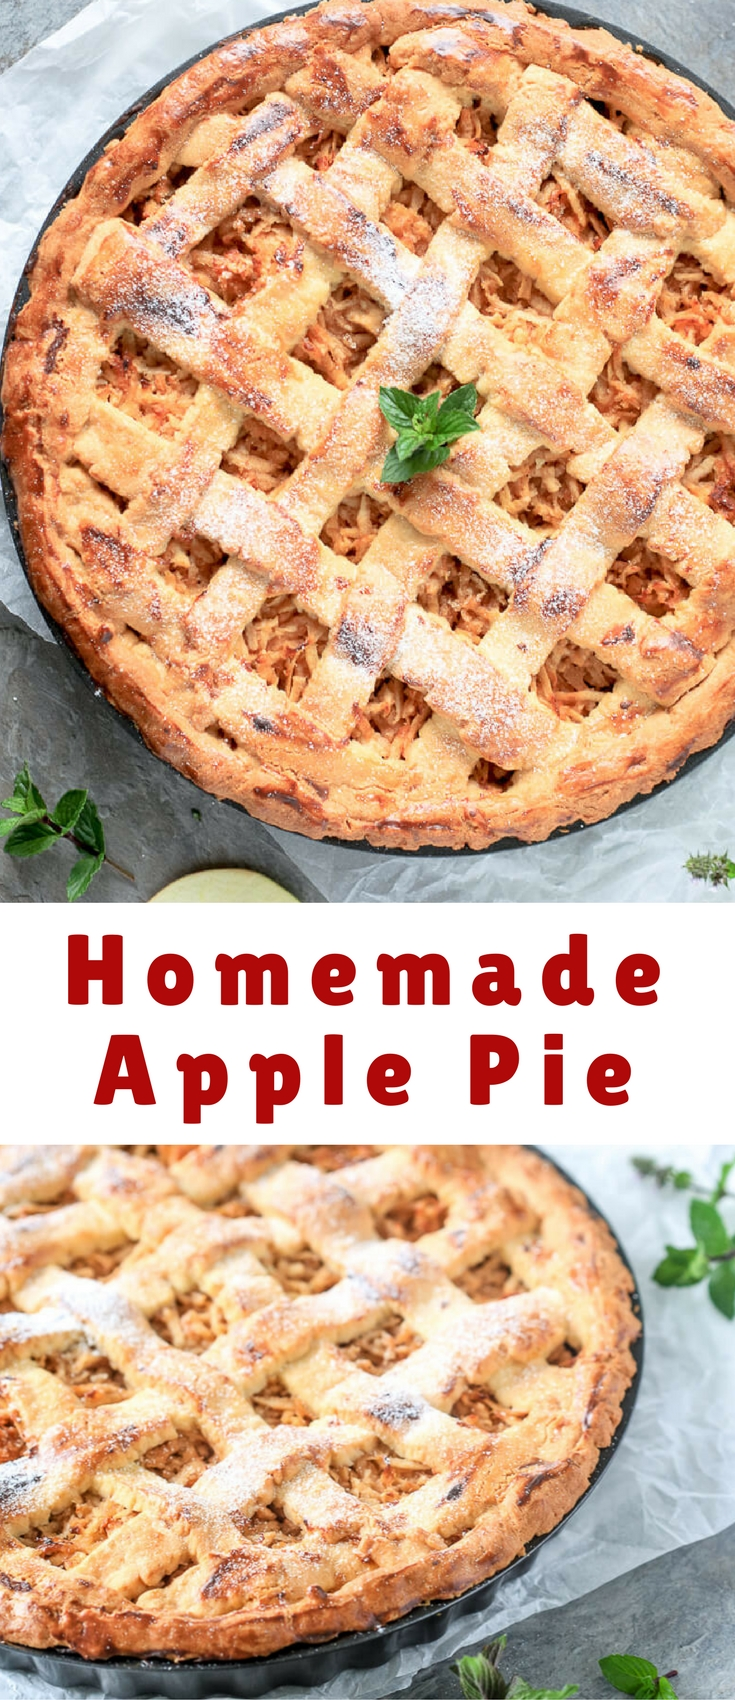 This Homemade Apple Pie is rustic and classic, just like grandma used to make it. Just like a good homemade pie is supposed to be.